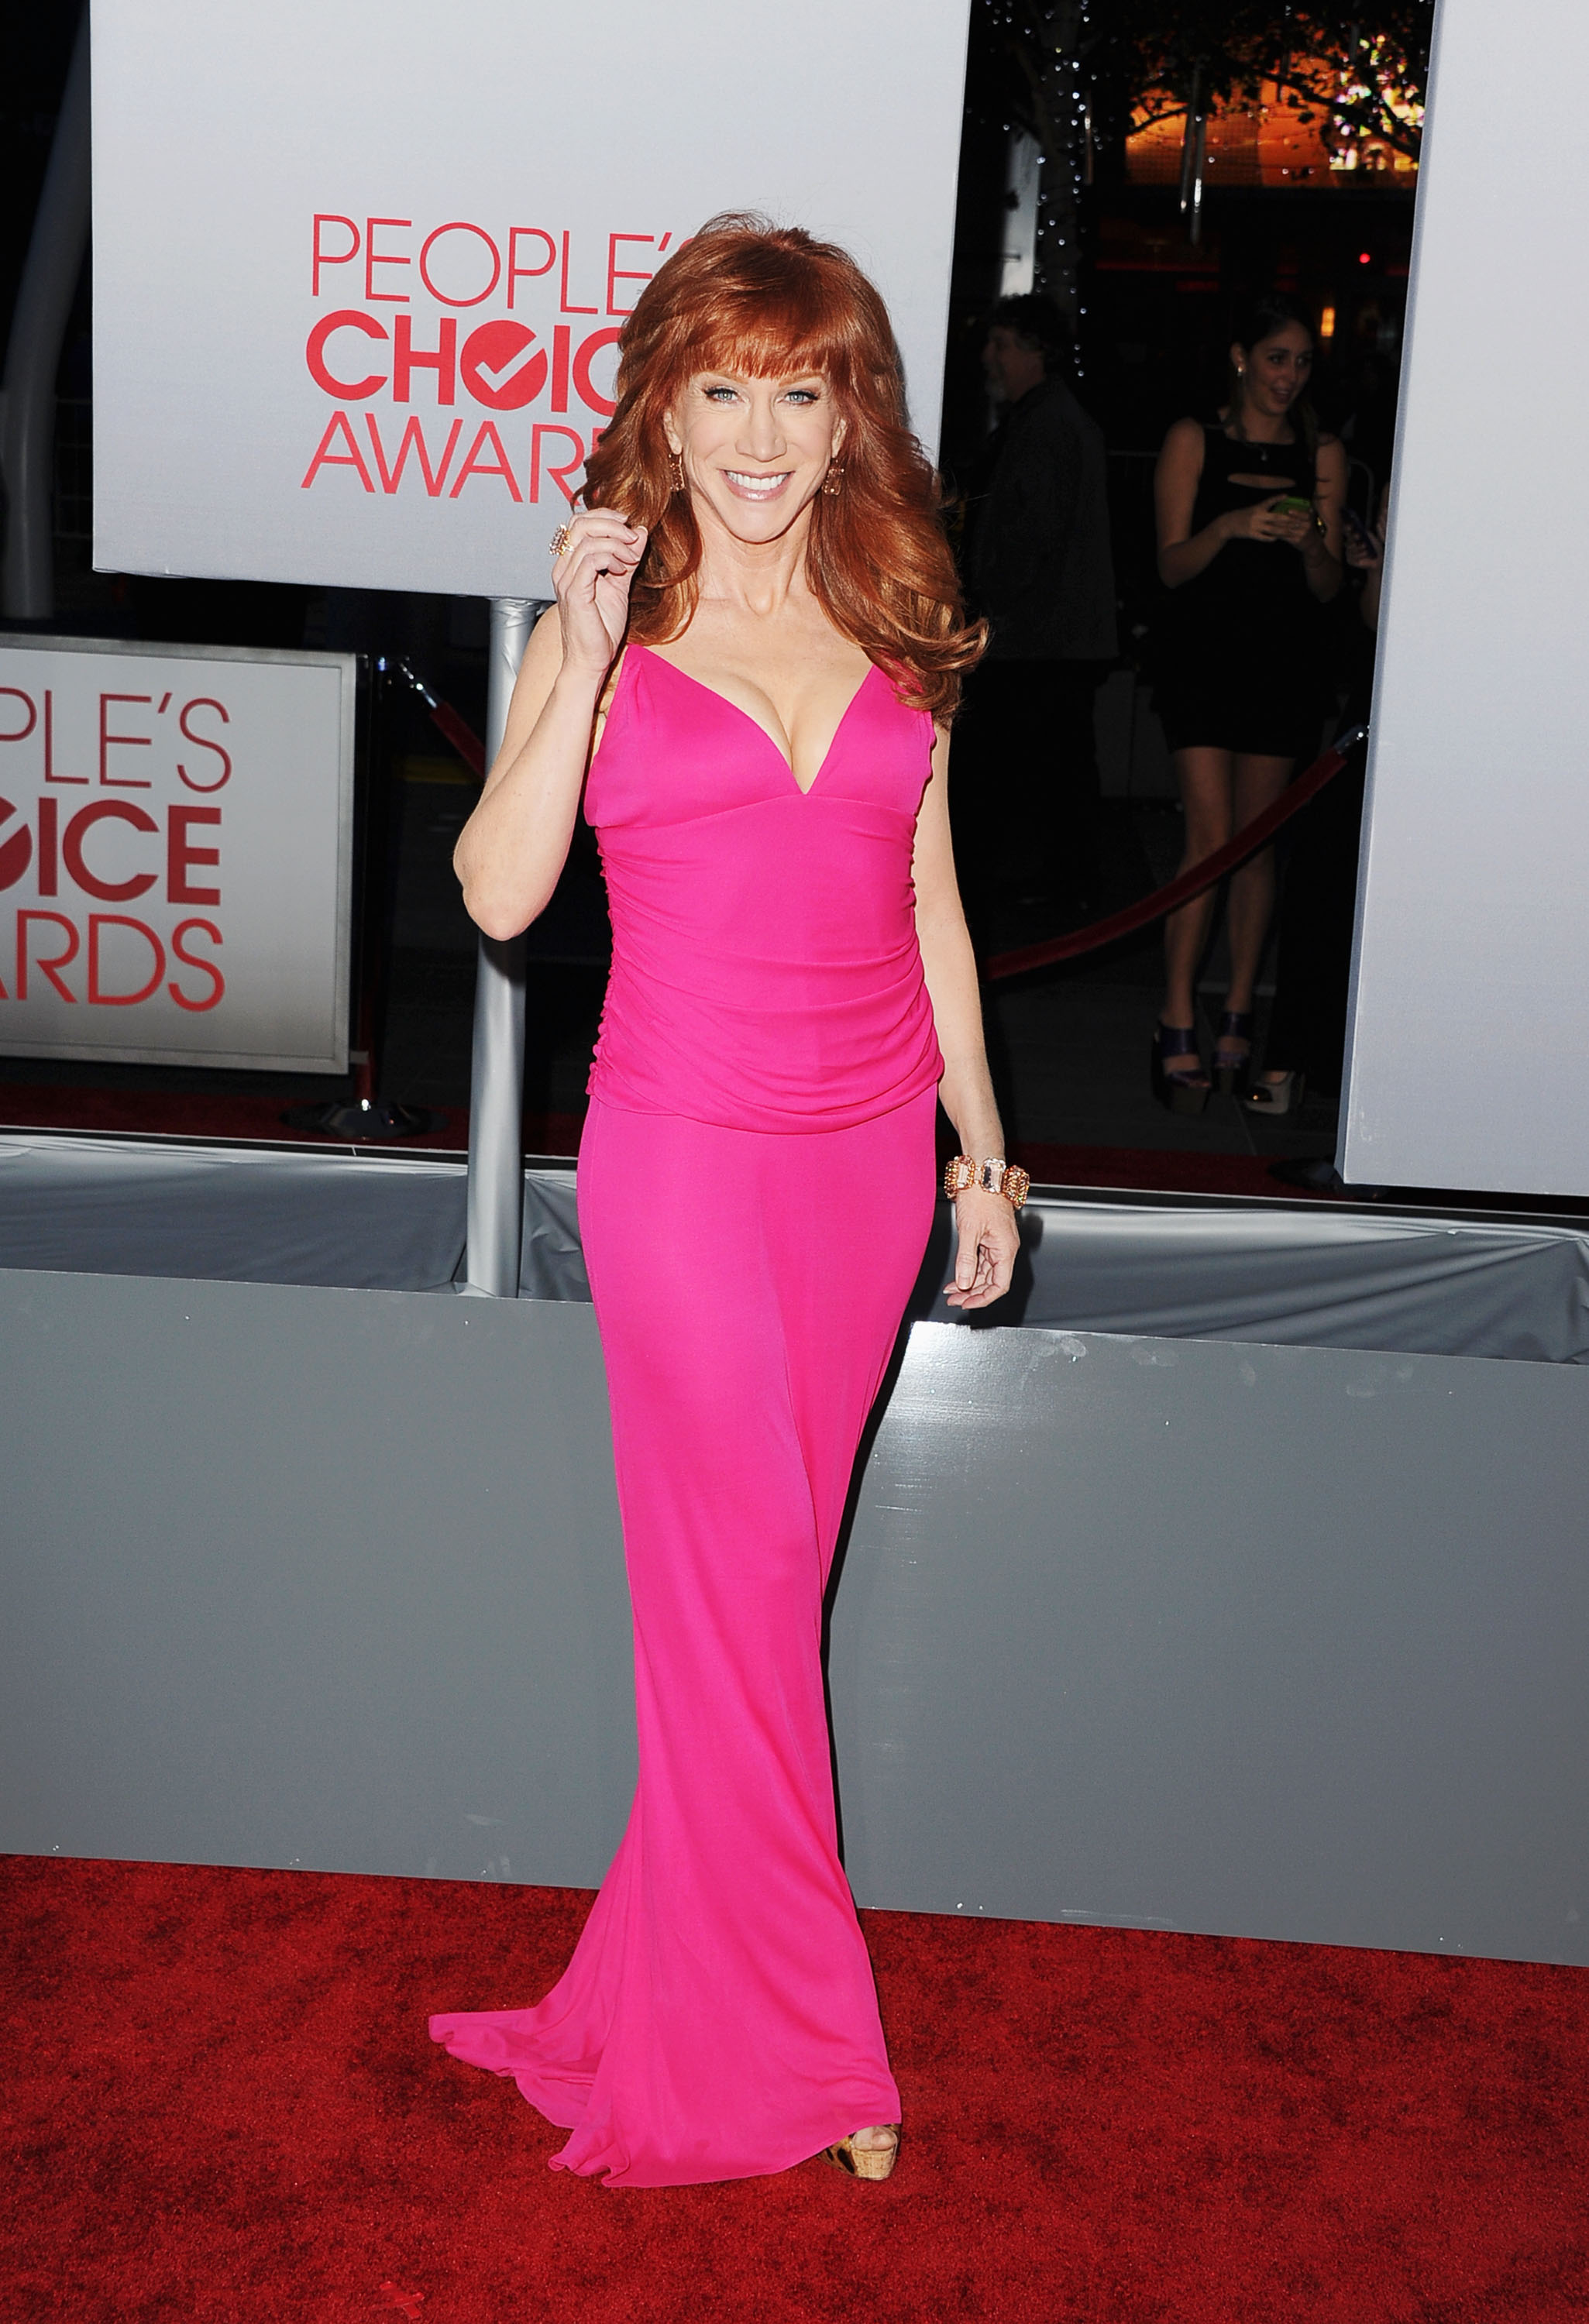 Kathy Griffin kicked off the 2012 award season with the People's Choice Awards.